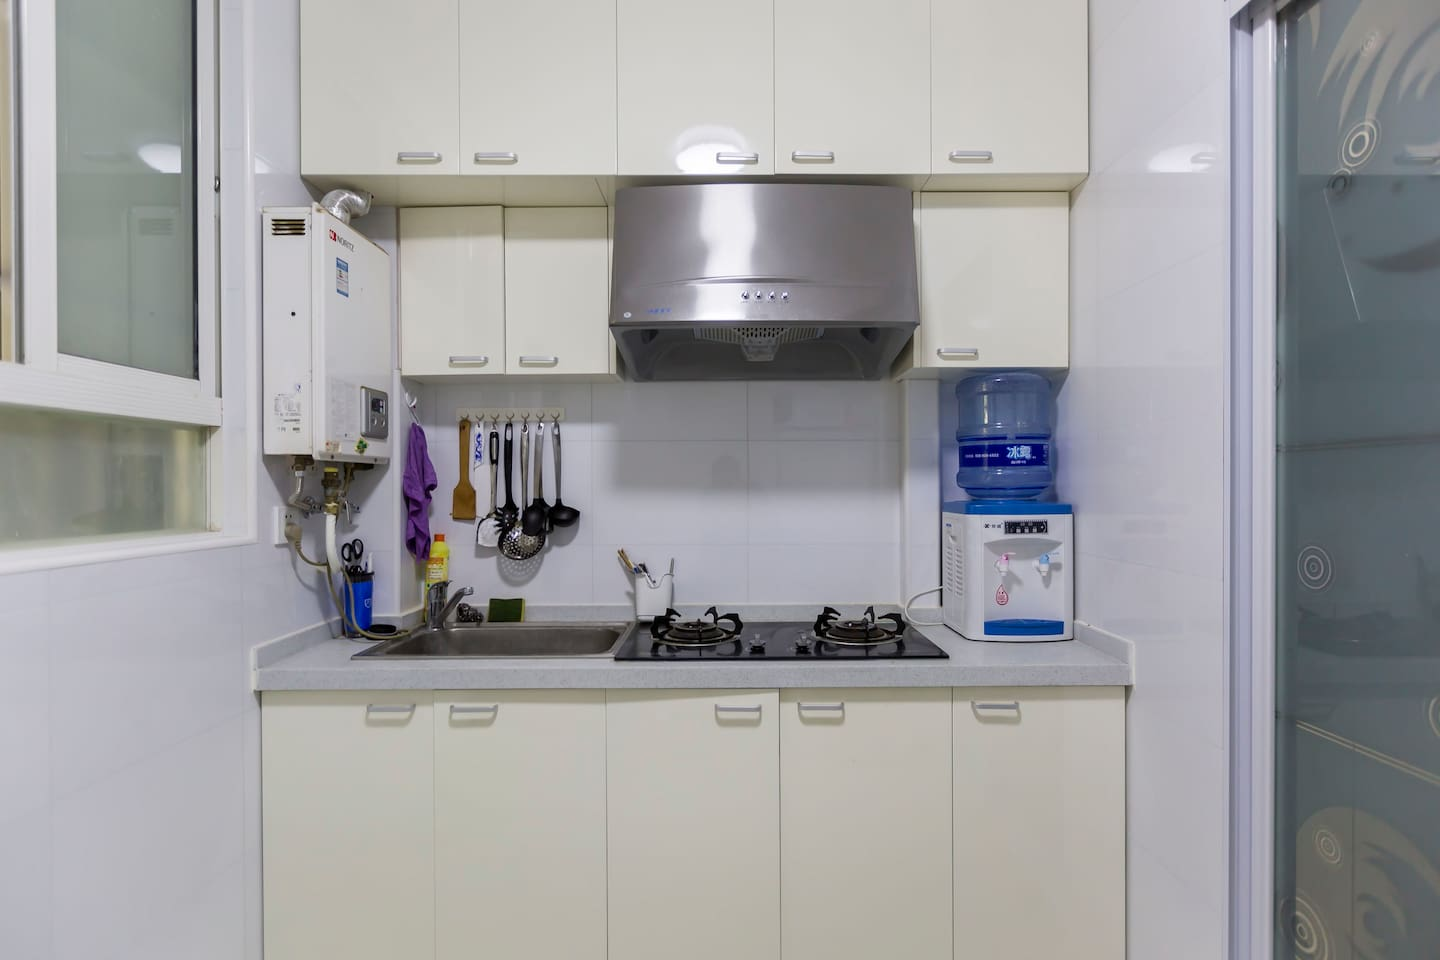 What kitchen looks like